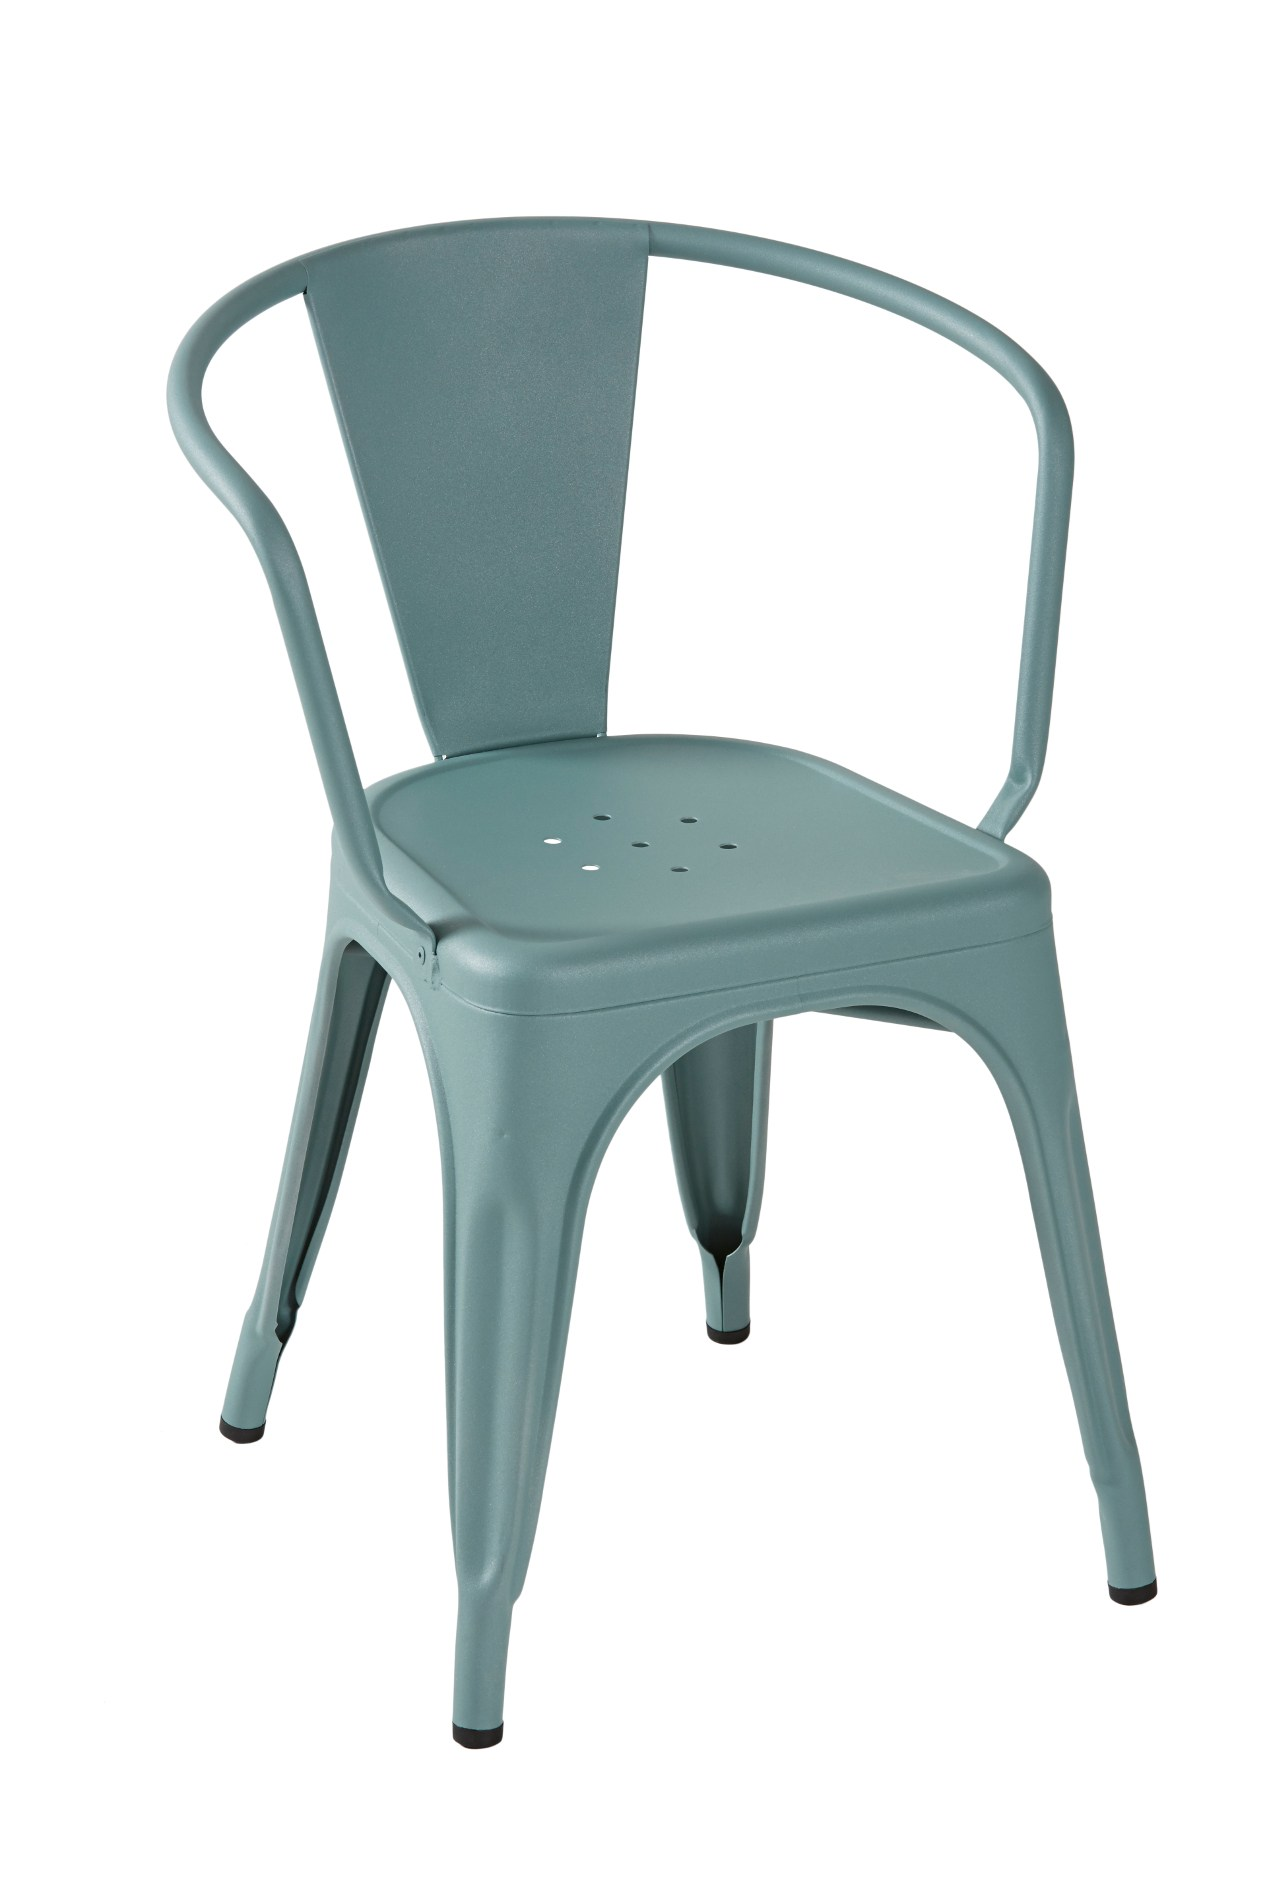 chair design metal best computer for gaming a56 by tolix steel jean pauchard